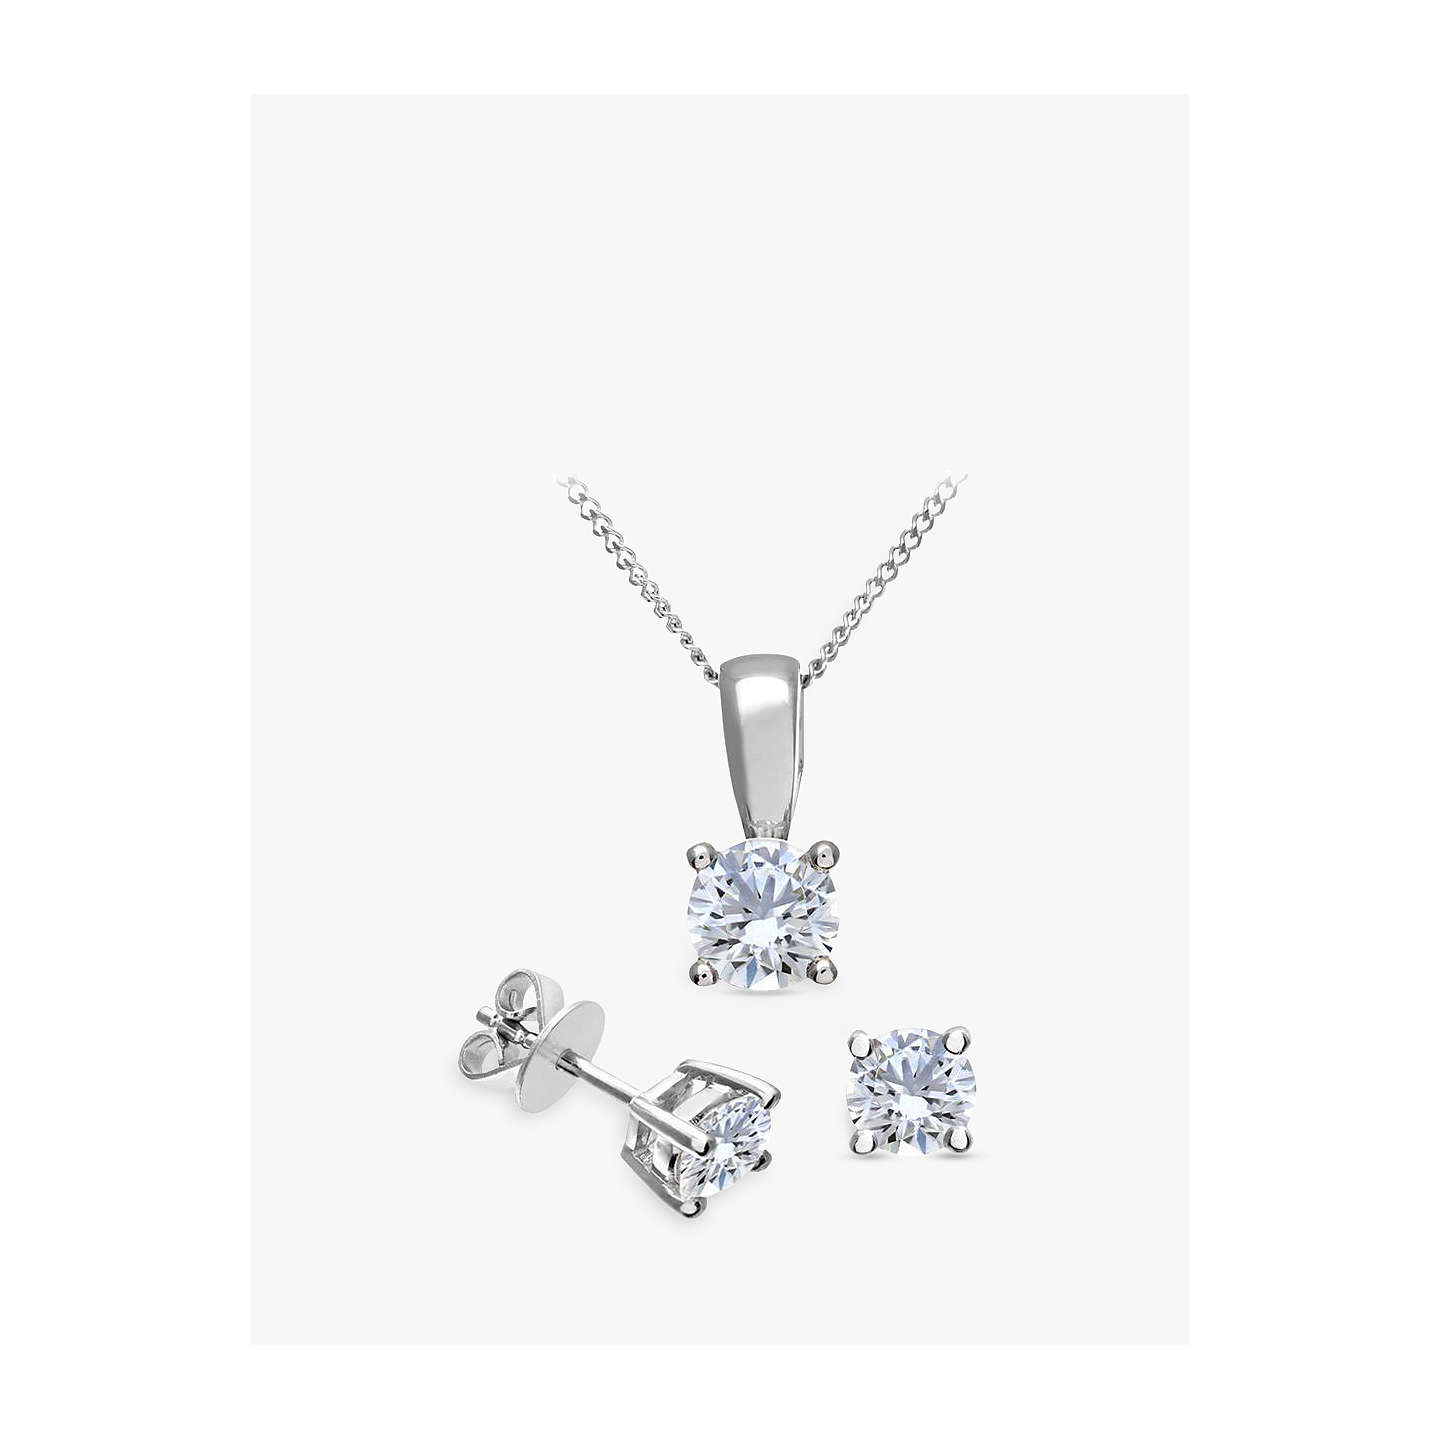 pdp gold round buydiamond rsp main necklace diamond pendant white brilliant collection solitaire at online